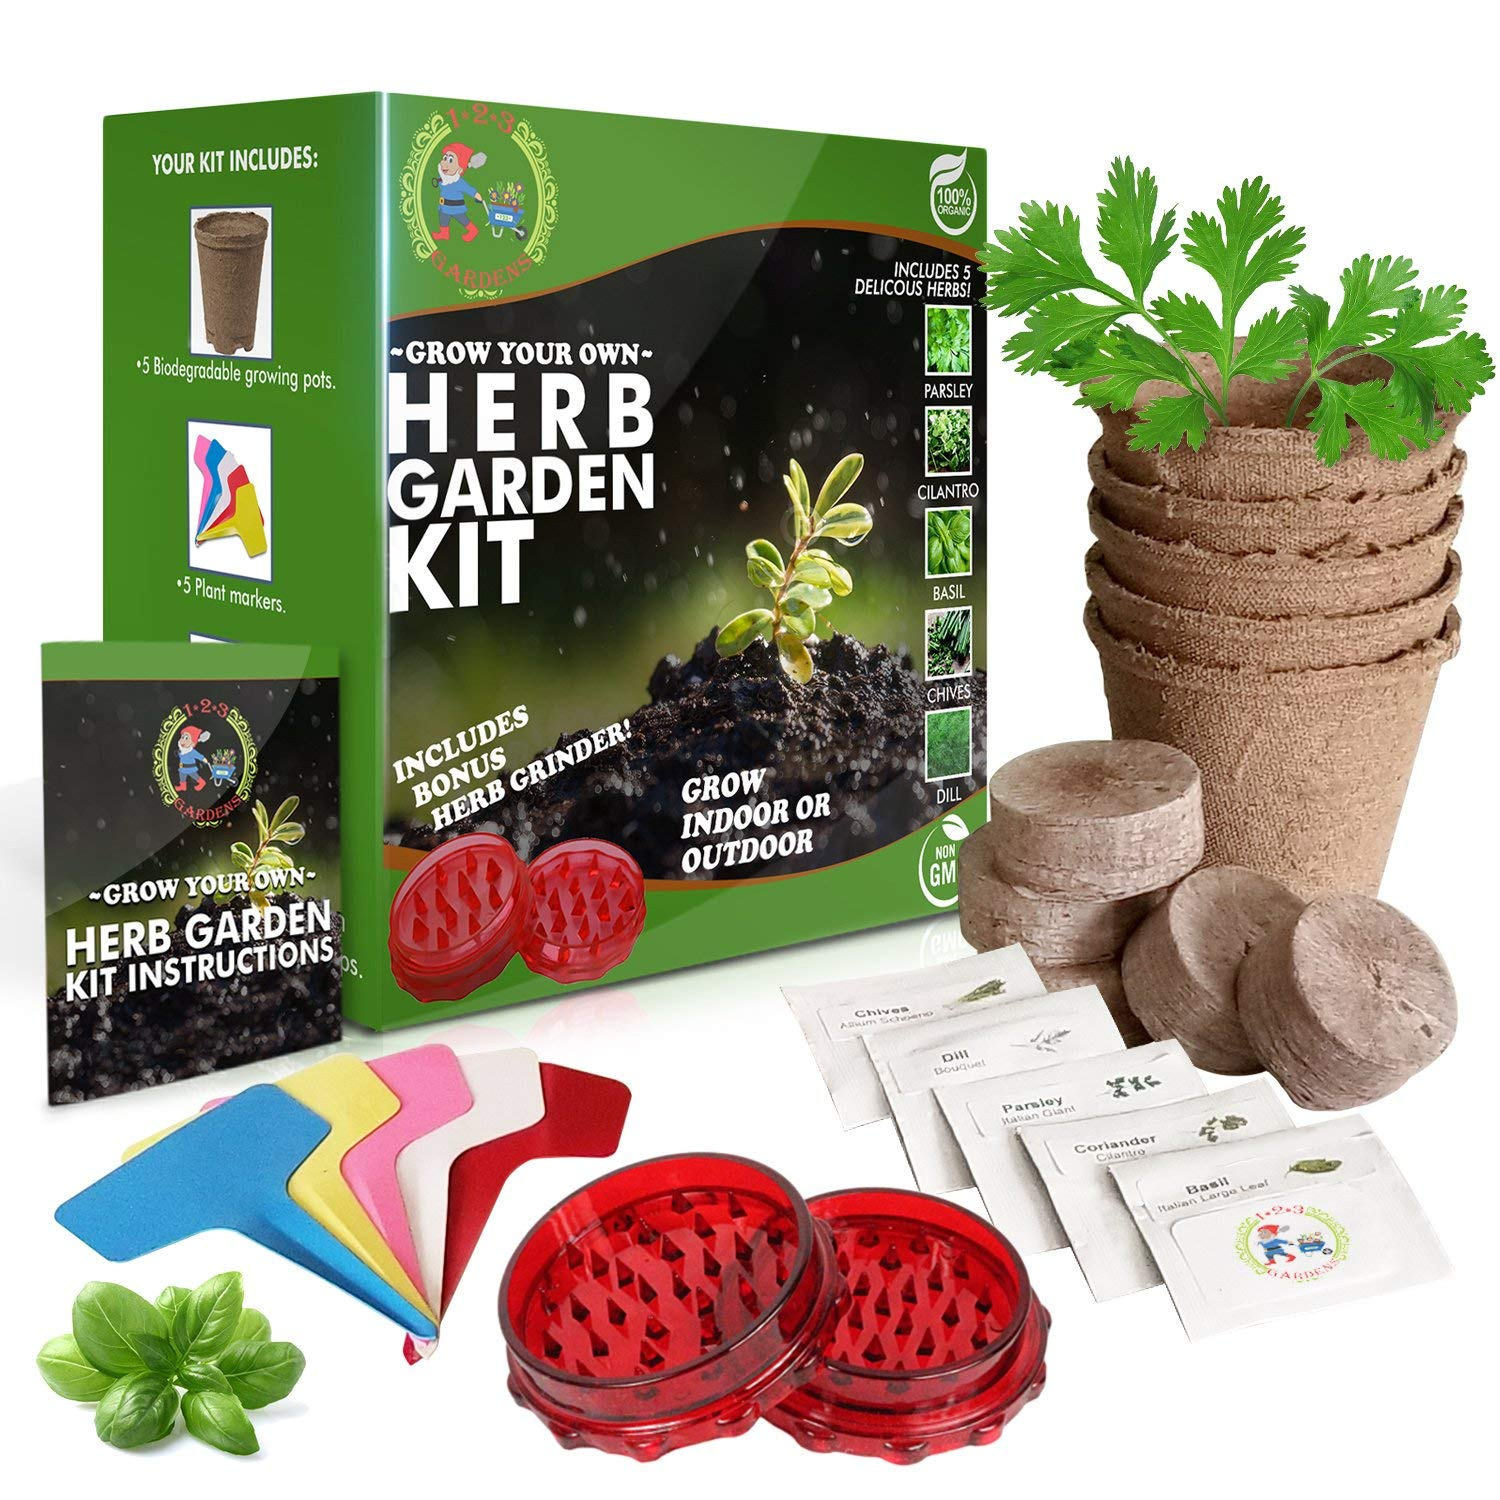 1-2-3 GARDENS- HERB GARDEN STARTER KIT-Grow 5 Delicious Herbs at Home (Parsley, Basil, Chives, Dill,Cilantro)Includes BONUS Herb Grinder- Grow Indoors or Outdoors-Organic and Non-GMO | Great Gift Idea